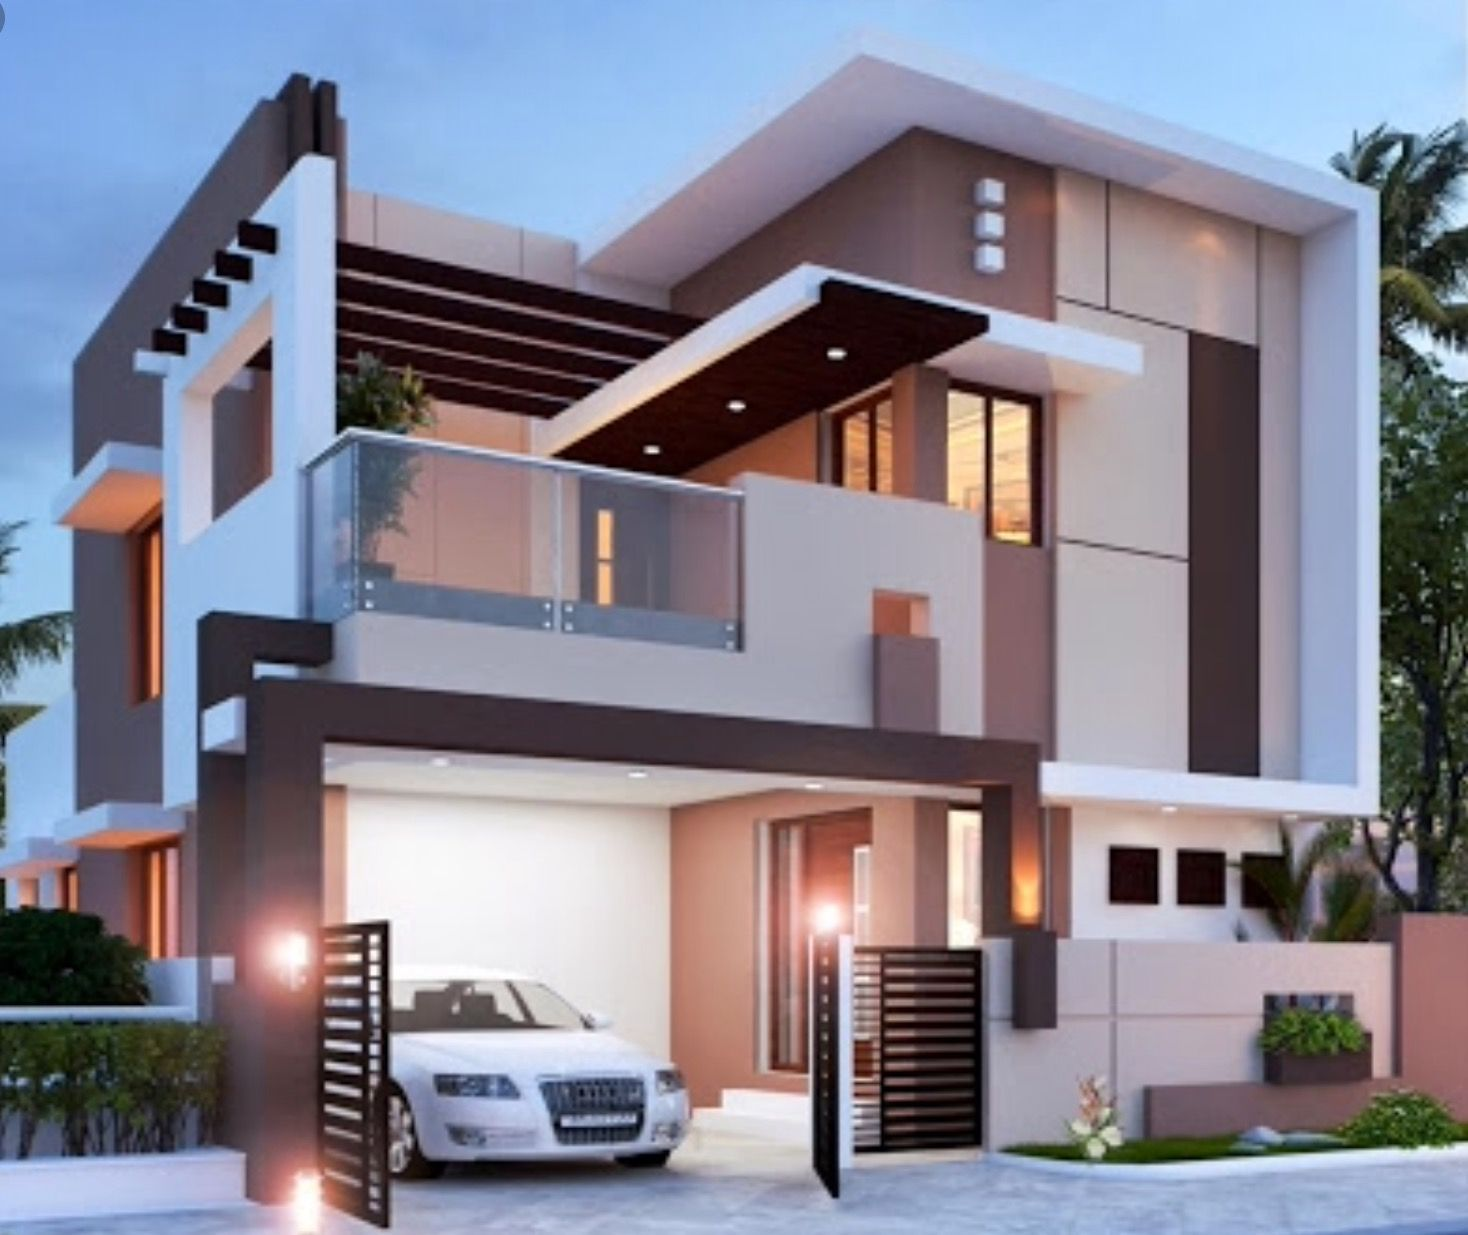 21 The Most Unique Modern Home Design In The World New Duplex House Design Cool House Designs Bungalow House Design